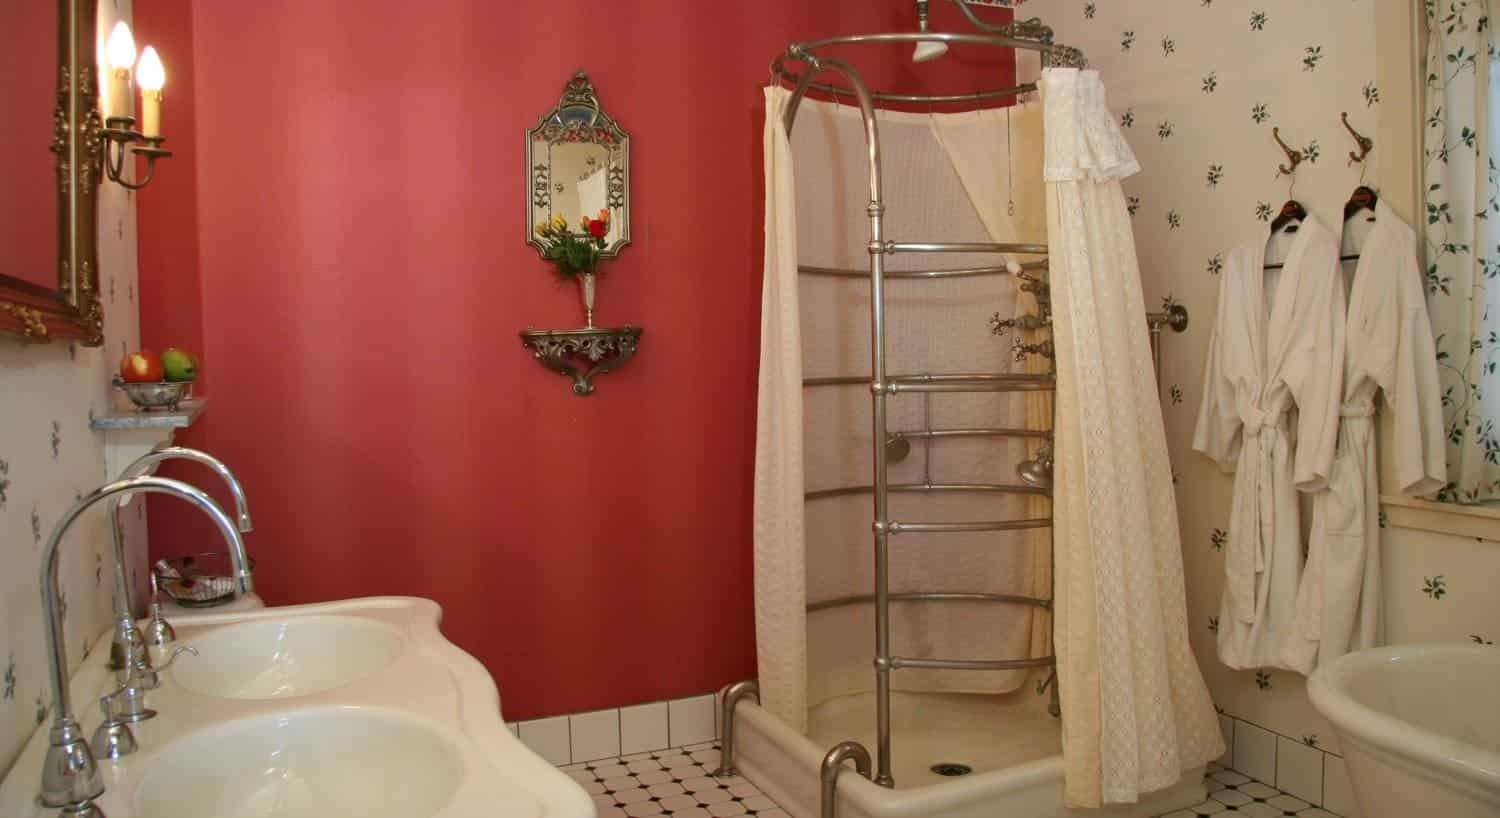 The Suite guest bath with red walls and ivory papered wall, corner shower, freestanding tub and double bowl sink